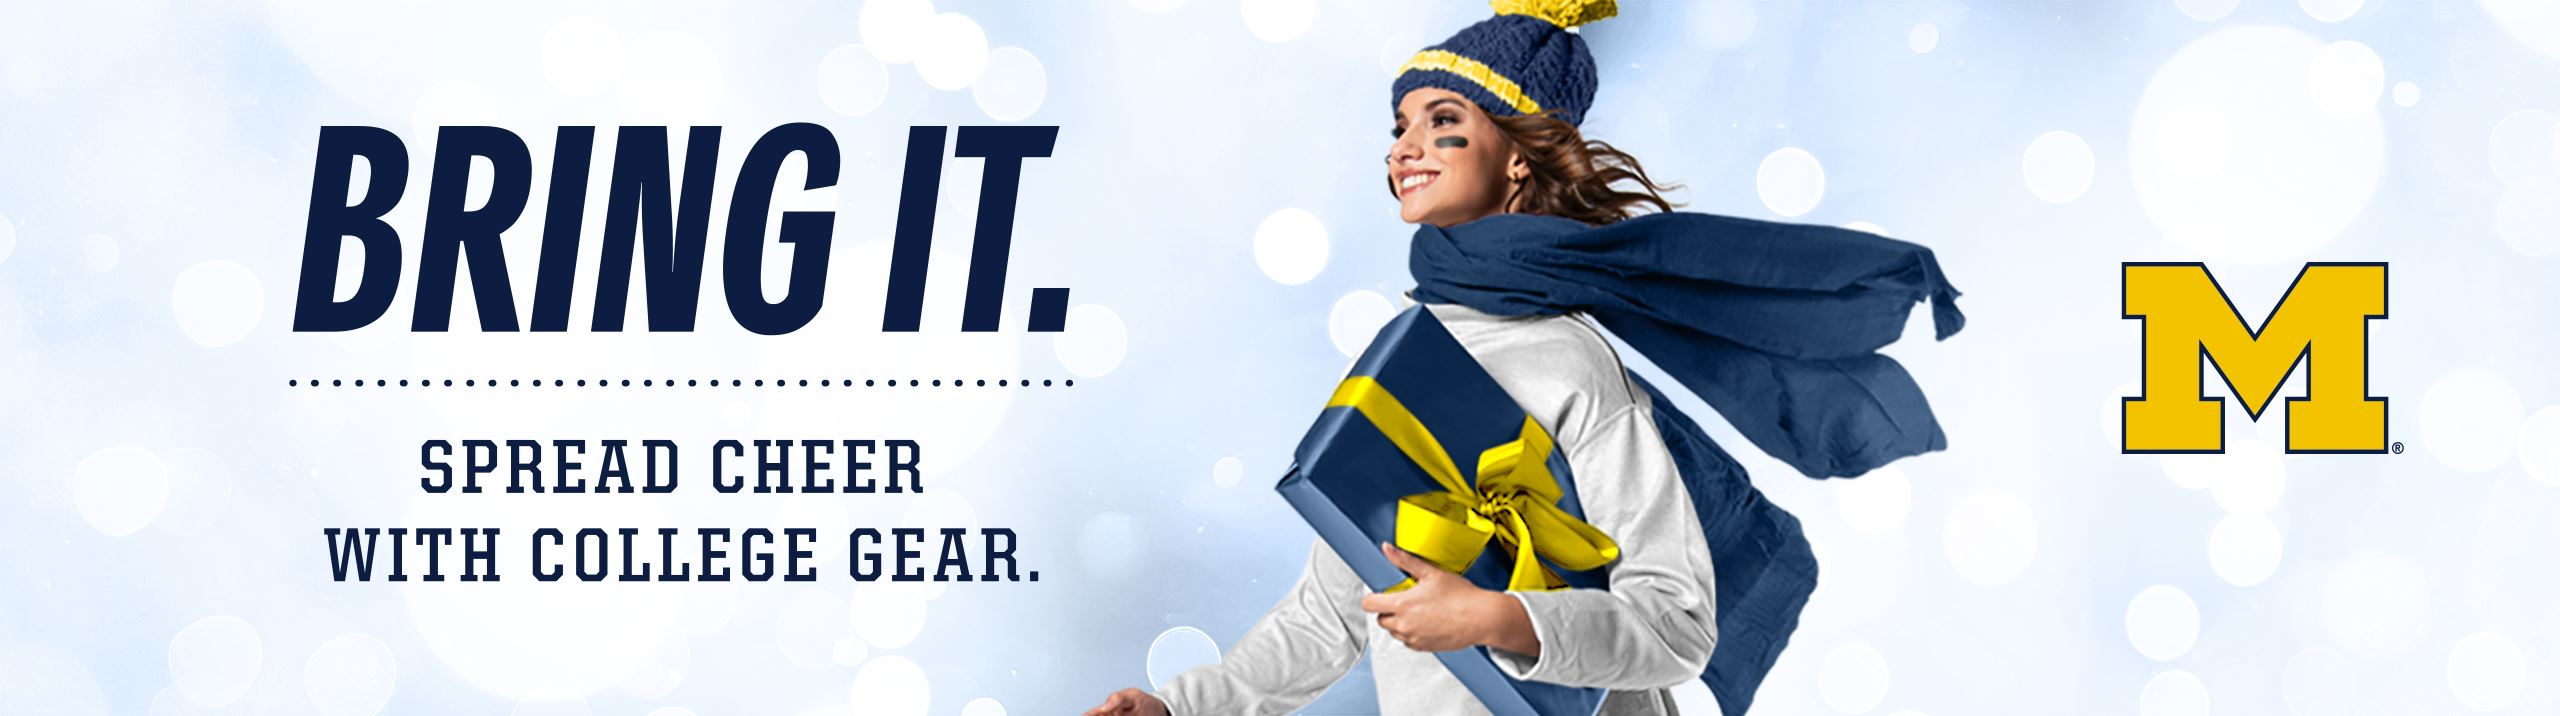 Bring It. Spread Cheer with College Gear.